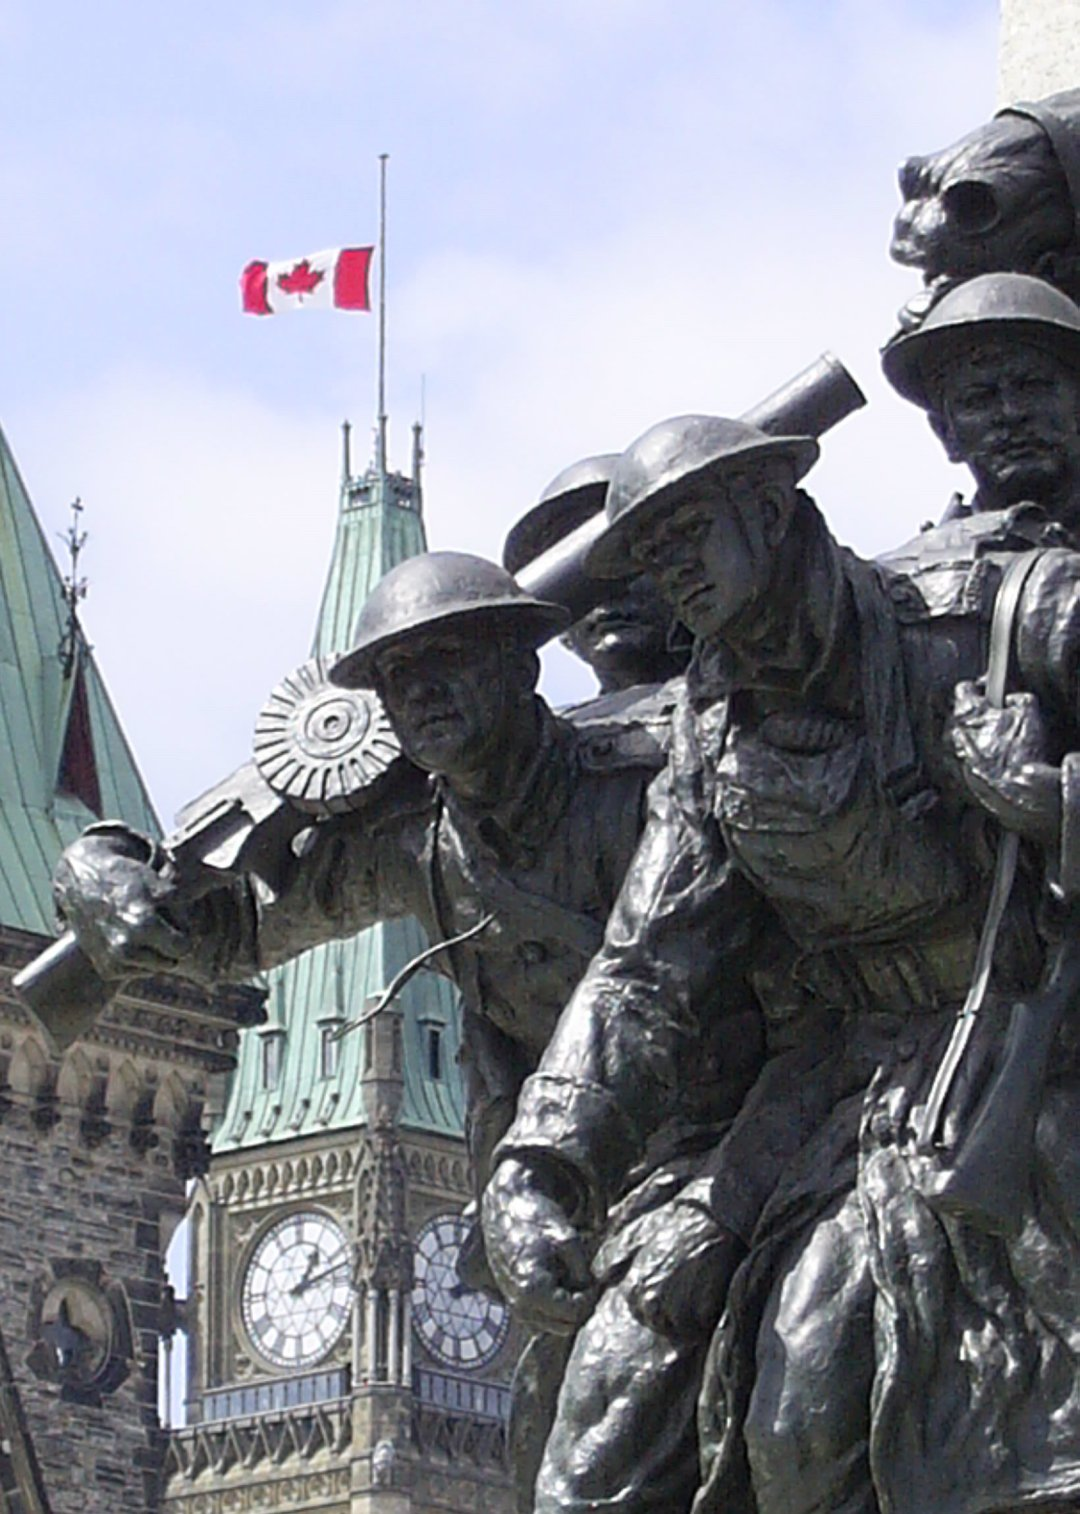 My Remembrance Day Chat with John Lennon, Part 1. www.soulfultraveler.com